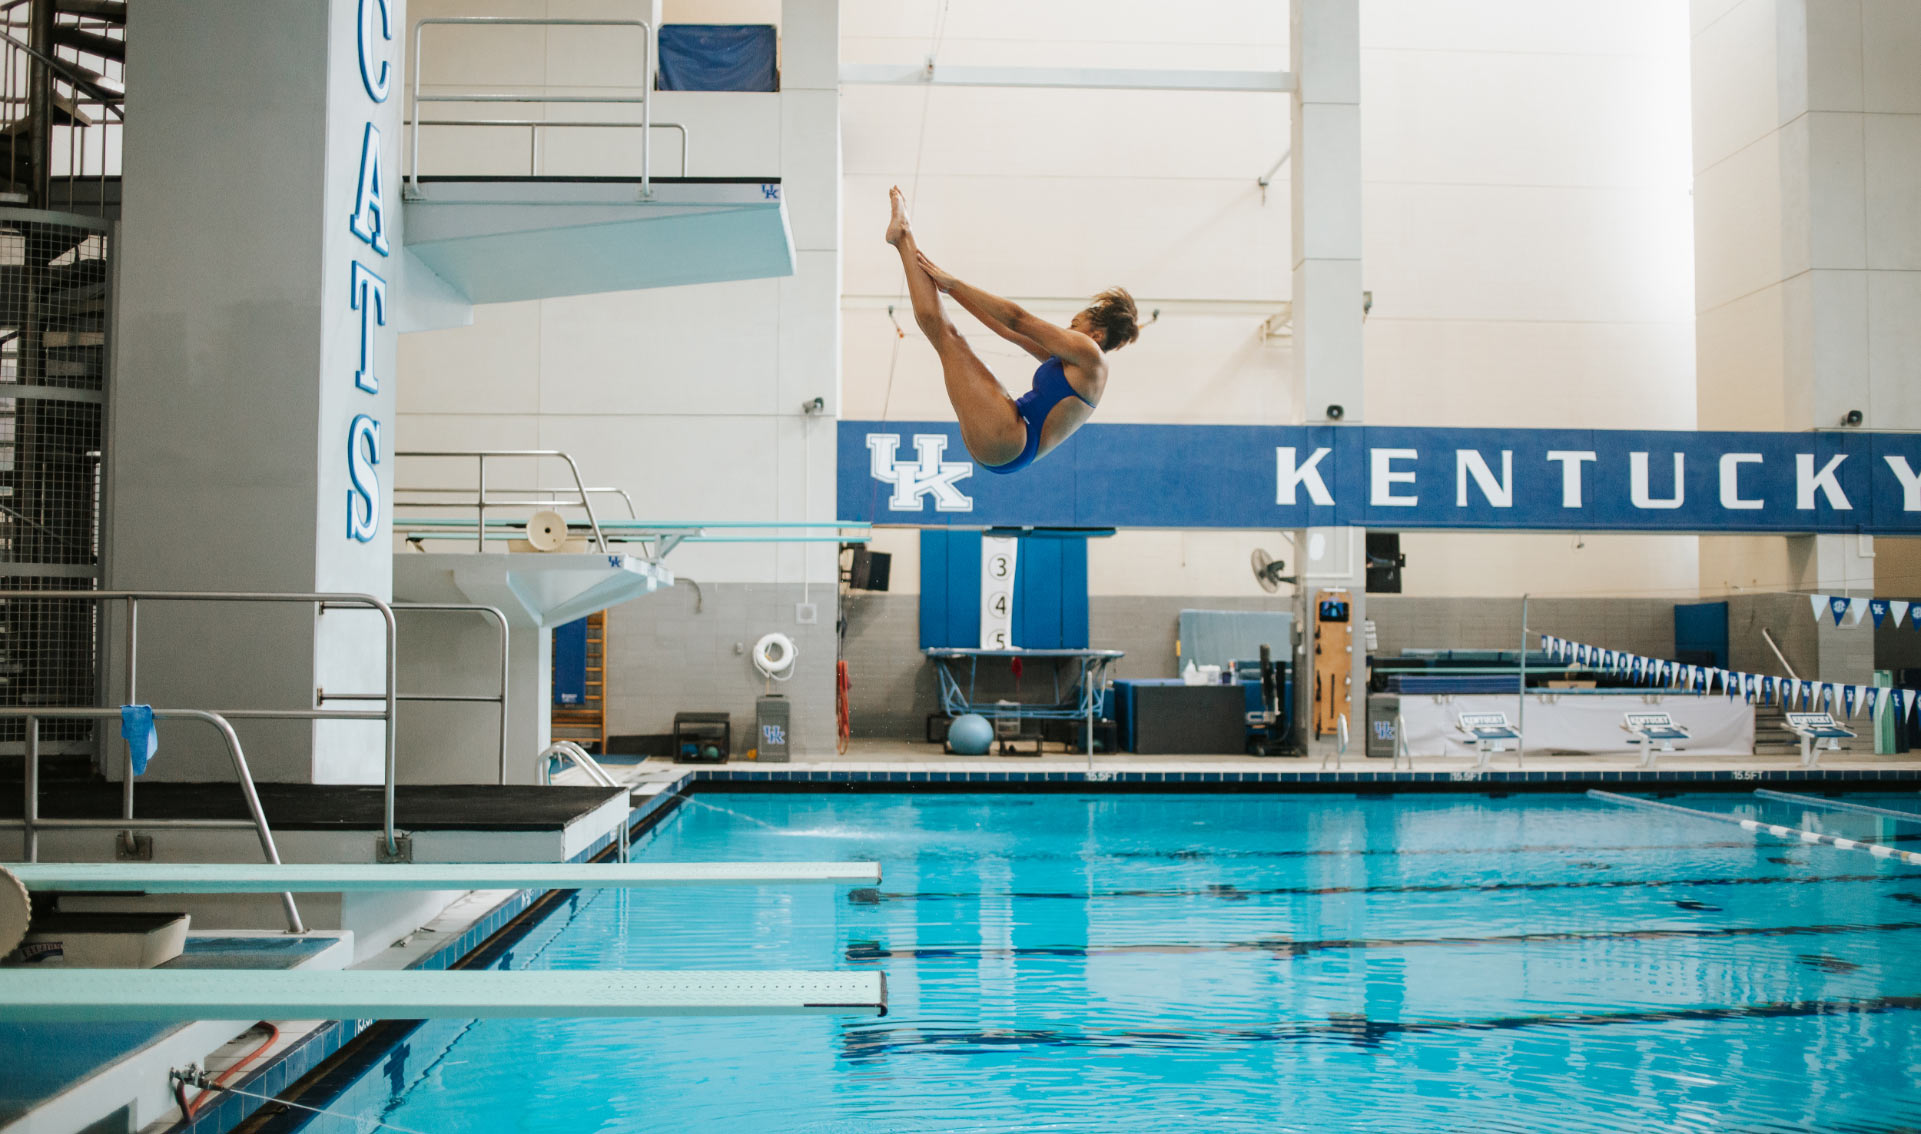 A photo of Jaida mid-dive, her body in the shape of a 'V' as she flips backwards into the pool.